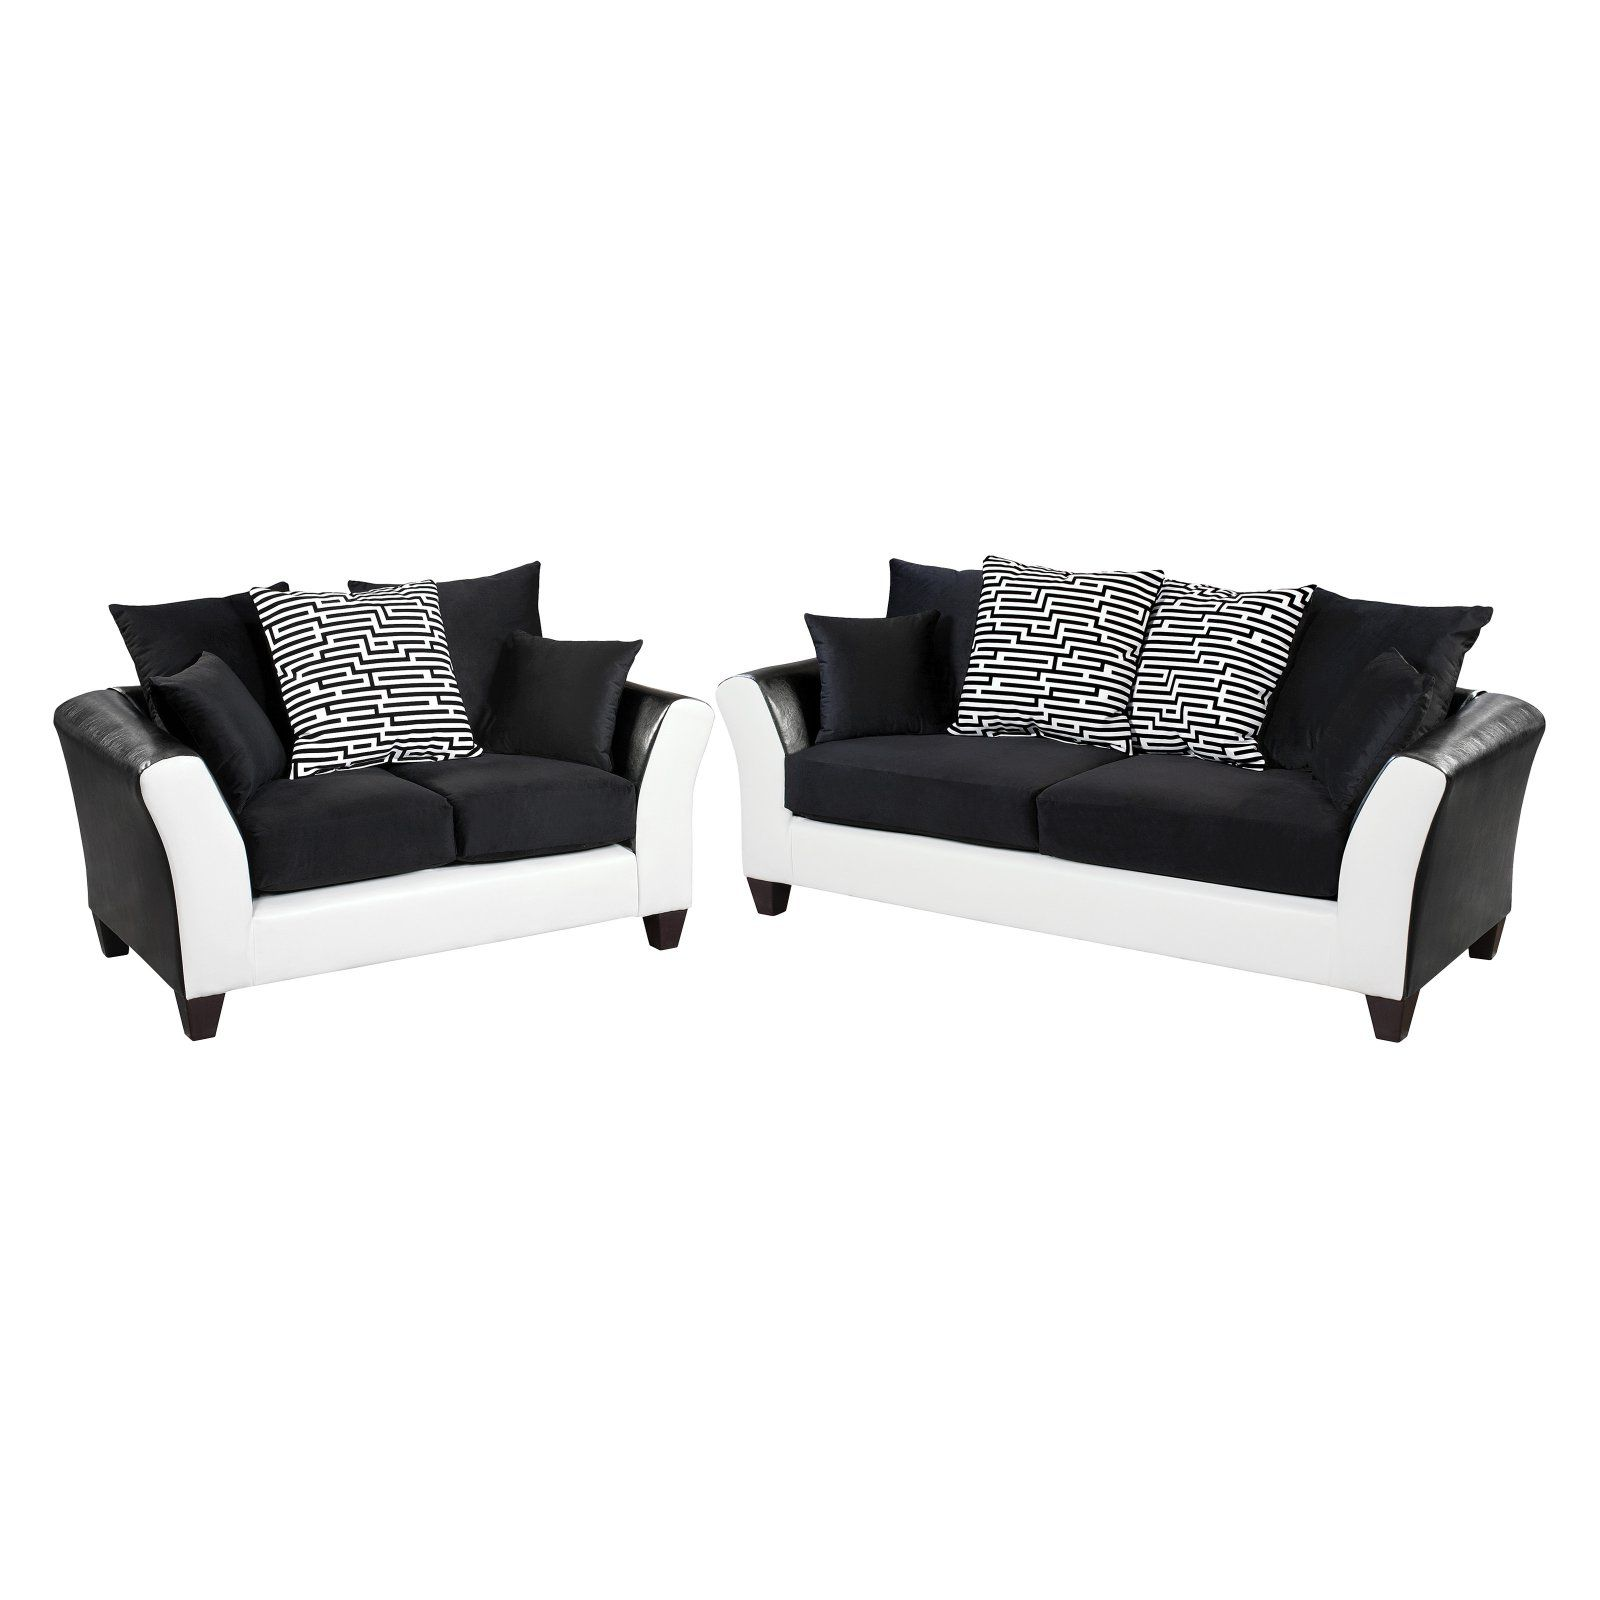 Awesome Flash Furniture Riverstone Implosion Velvet Loveseat And Onthecornerstone Fun Painted Chair Ideas Images Onthecornerstoneorg